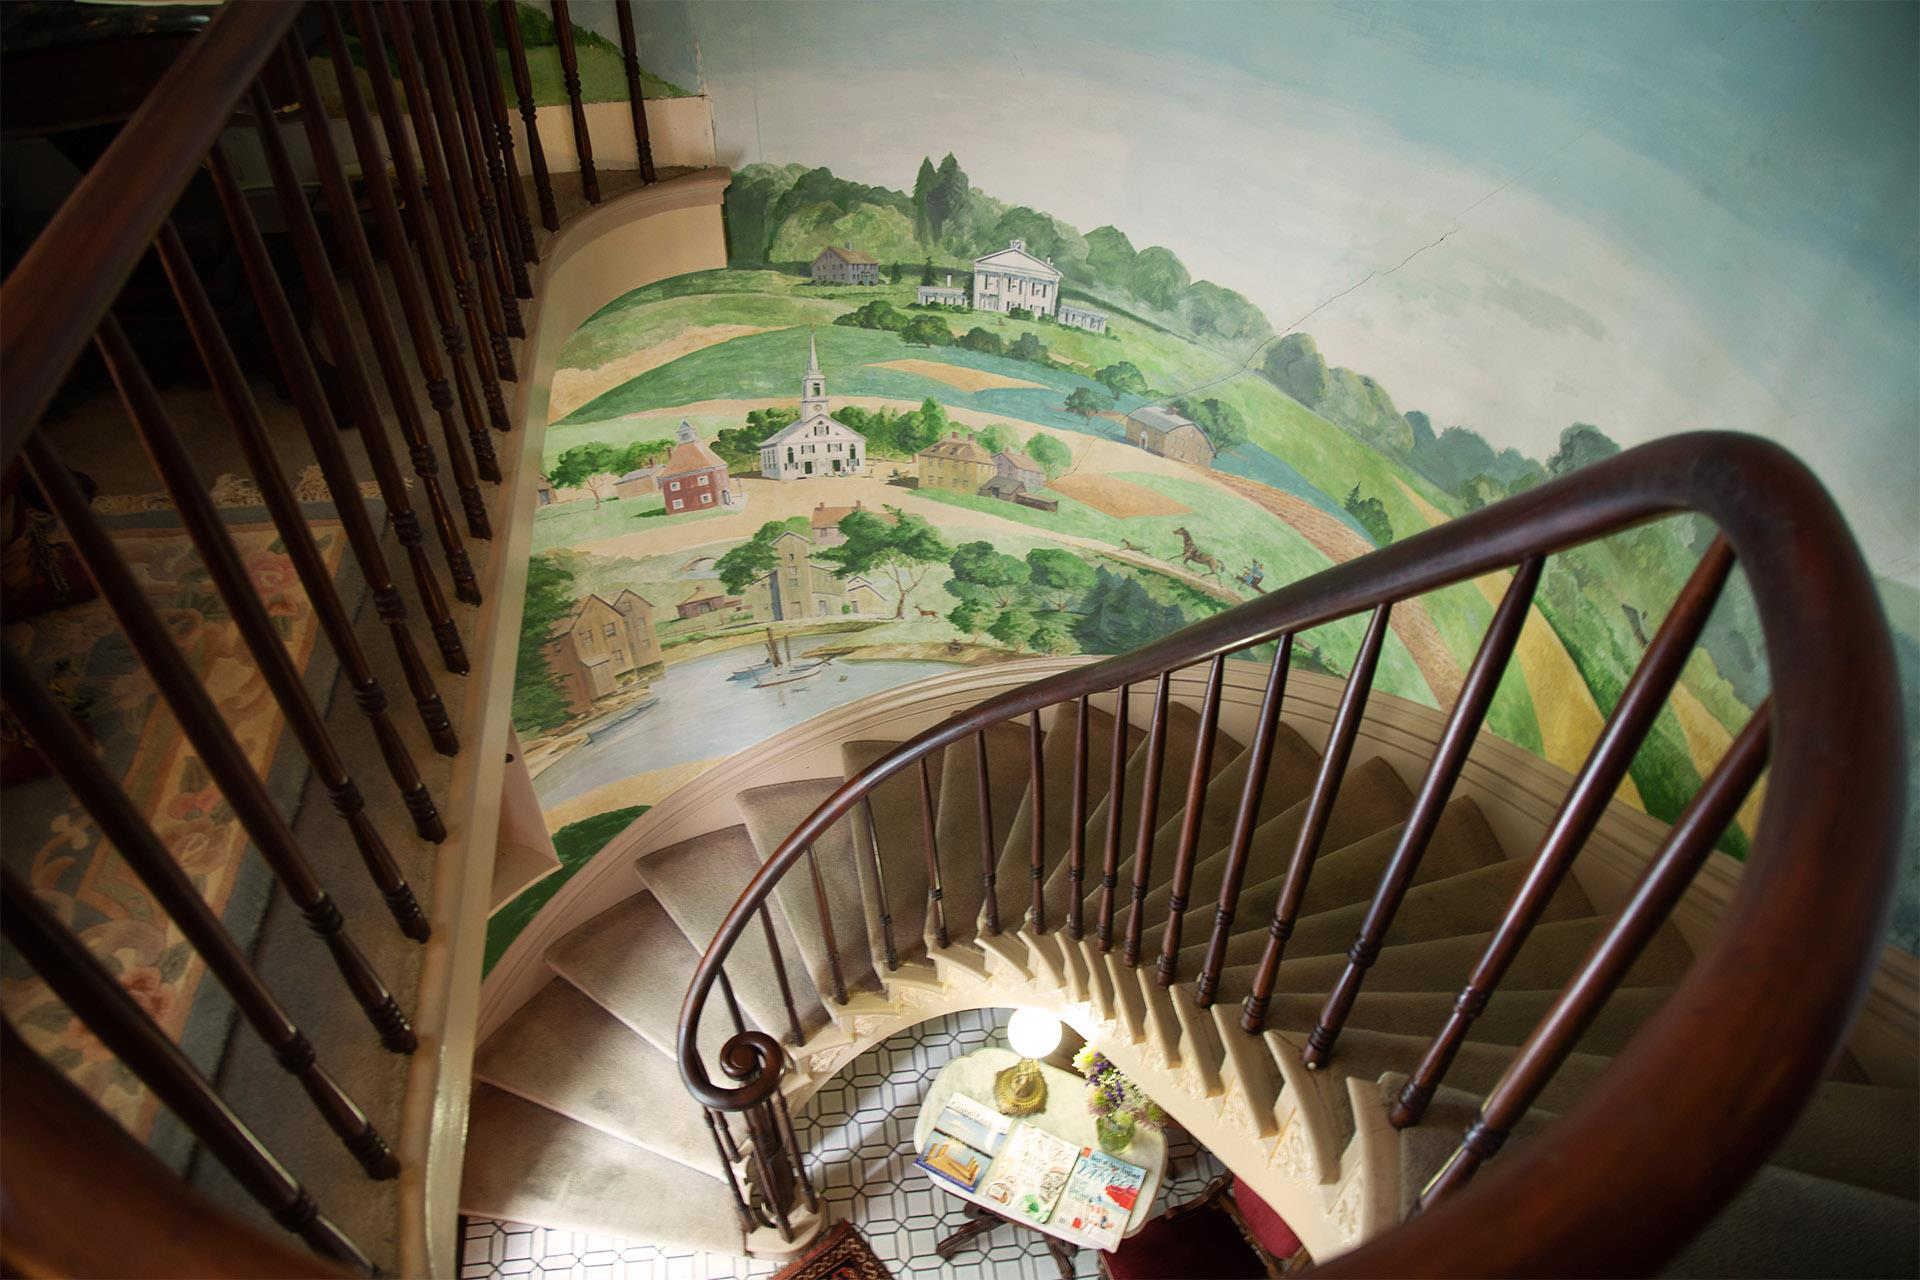 circular-staircase-with-mural-of-town